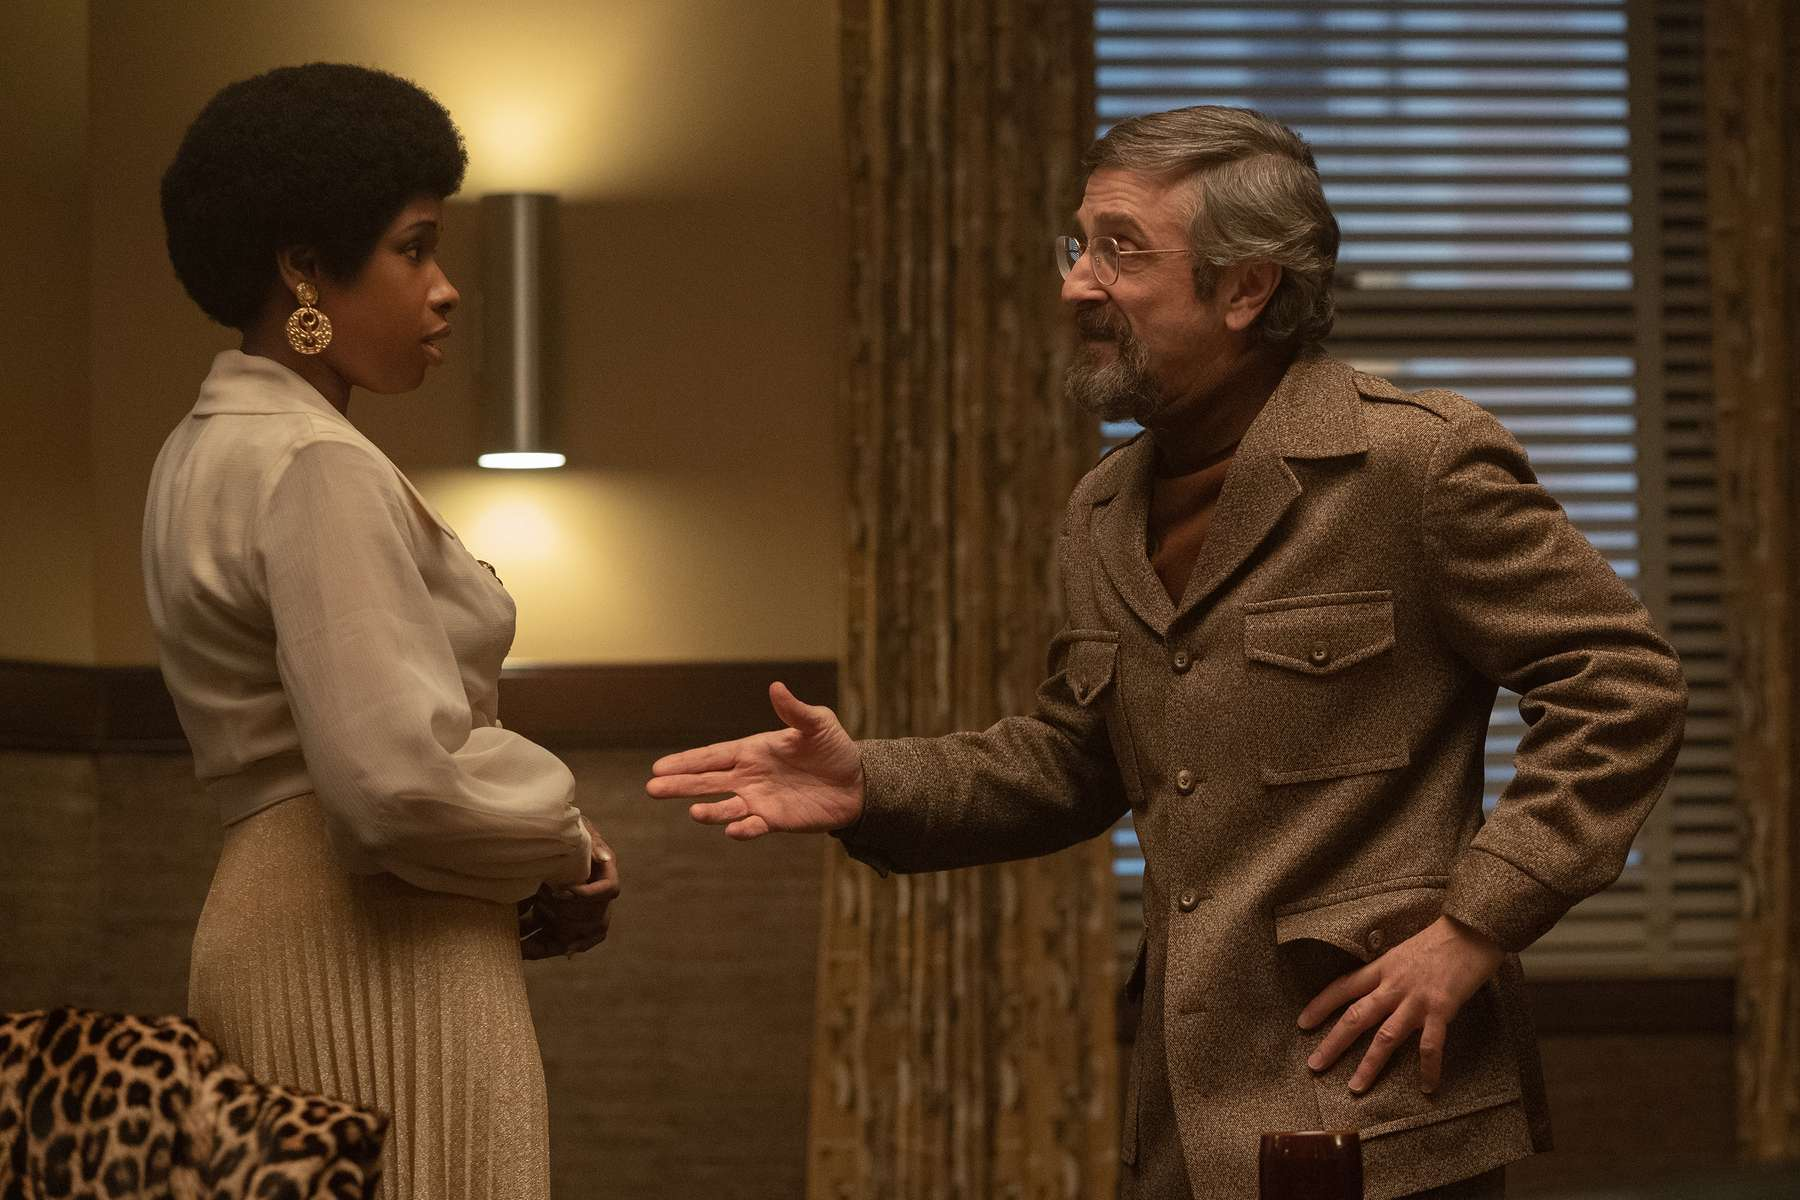 R_12971_RCJennifer Hudson stars as Aretha Franklin and Marc Maron as Jerry Wexler inRESPECTA Metro Goldwyn Mayer Pictures filmPhoto credit: Quantrell D. Colbert© 2021 Metro-Goldwyn-Mayer Pictures Inc. All Rights Reserved